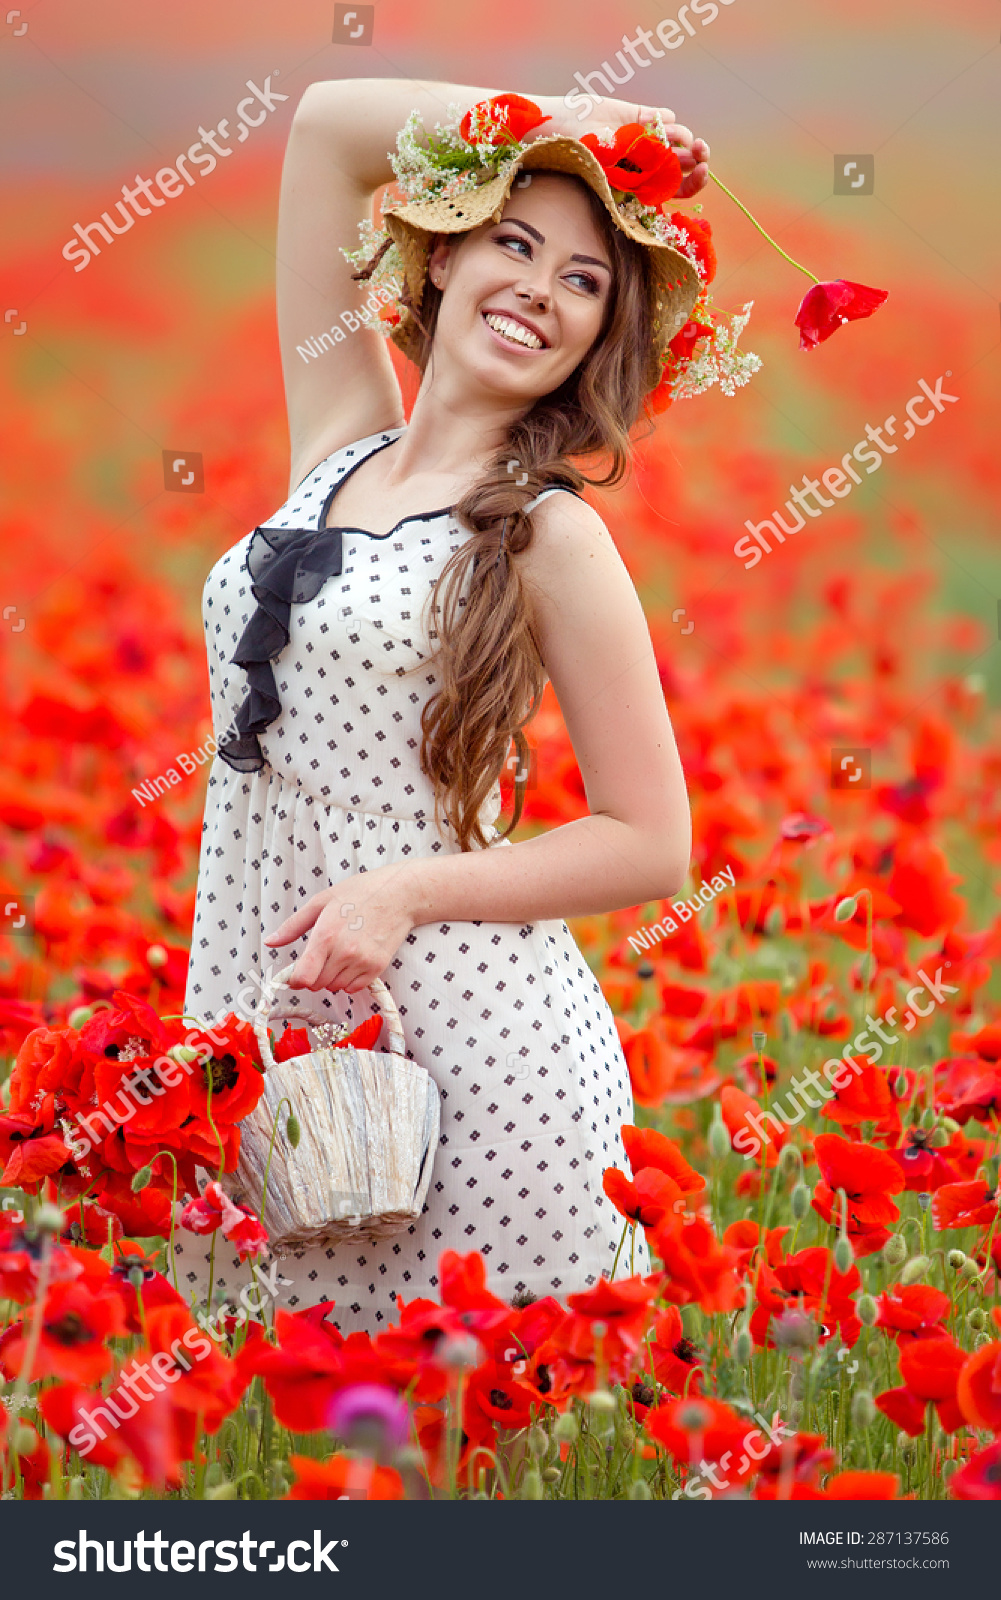 Beautiful woman field flowers stock photo 287137586 shutterstock beautiful woman in a field with flowers dhlflorist Gallery